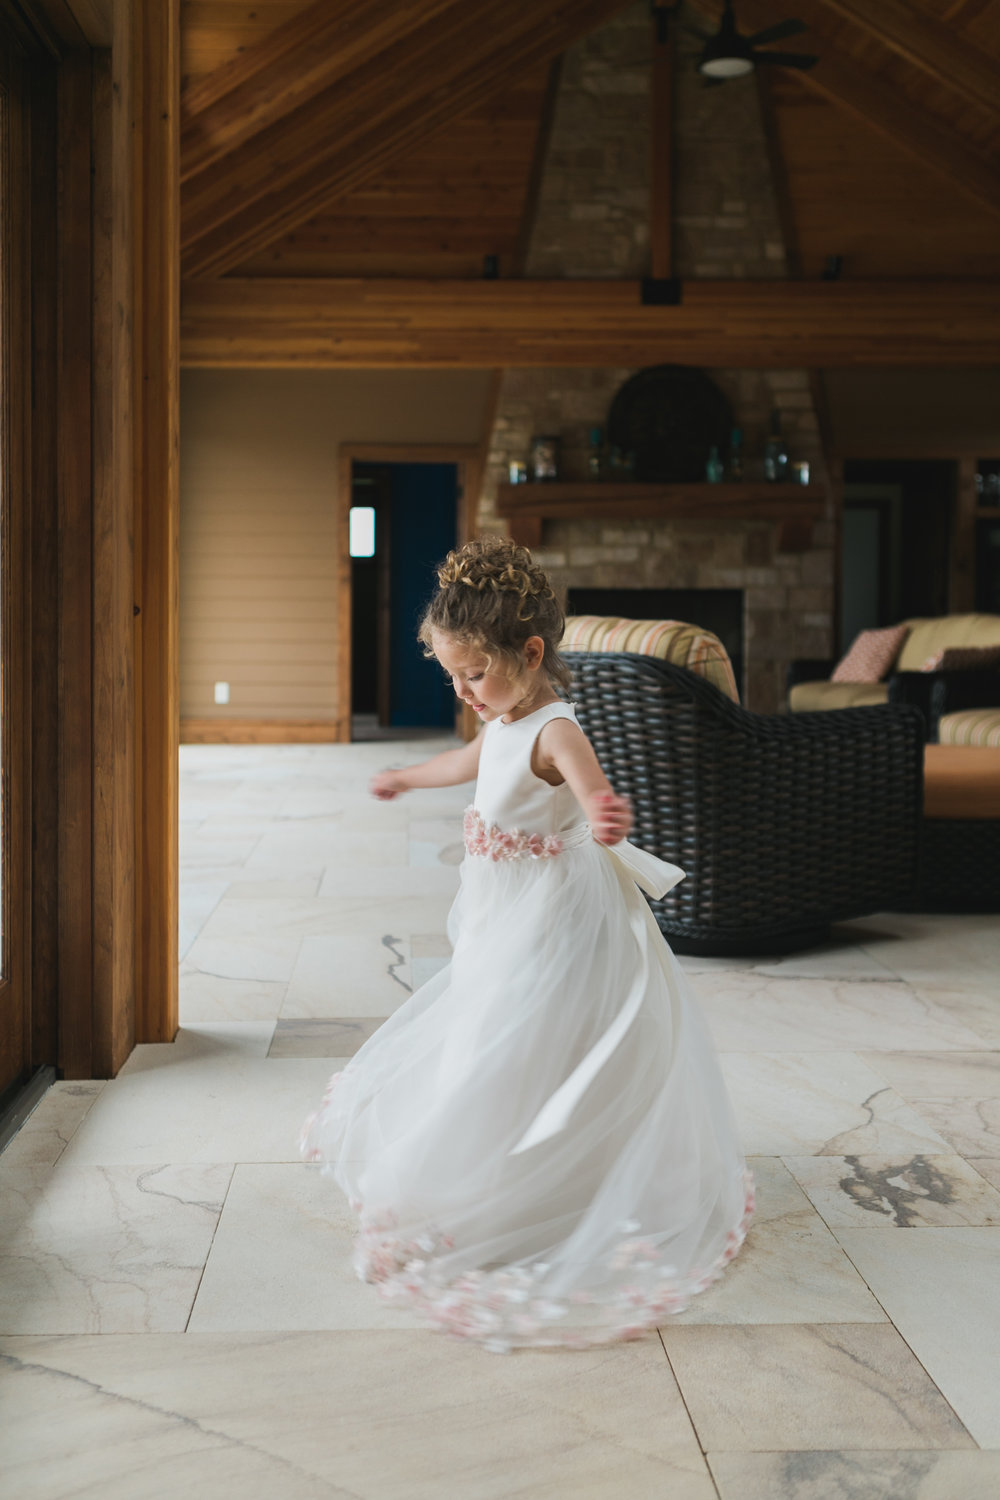 Wisconsin_Wedding_acowsay_Uttke_Photography_flower_girl.jpg